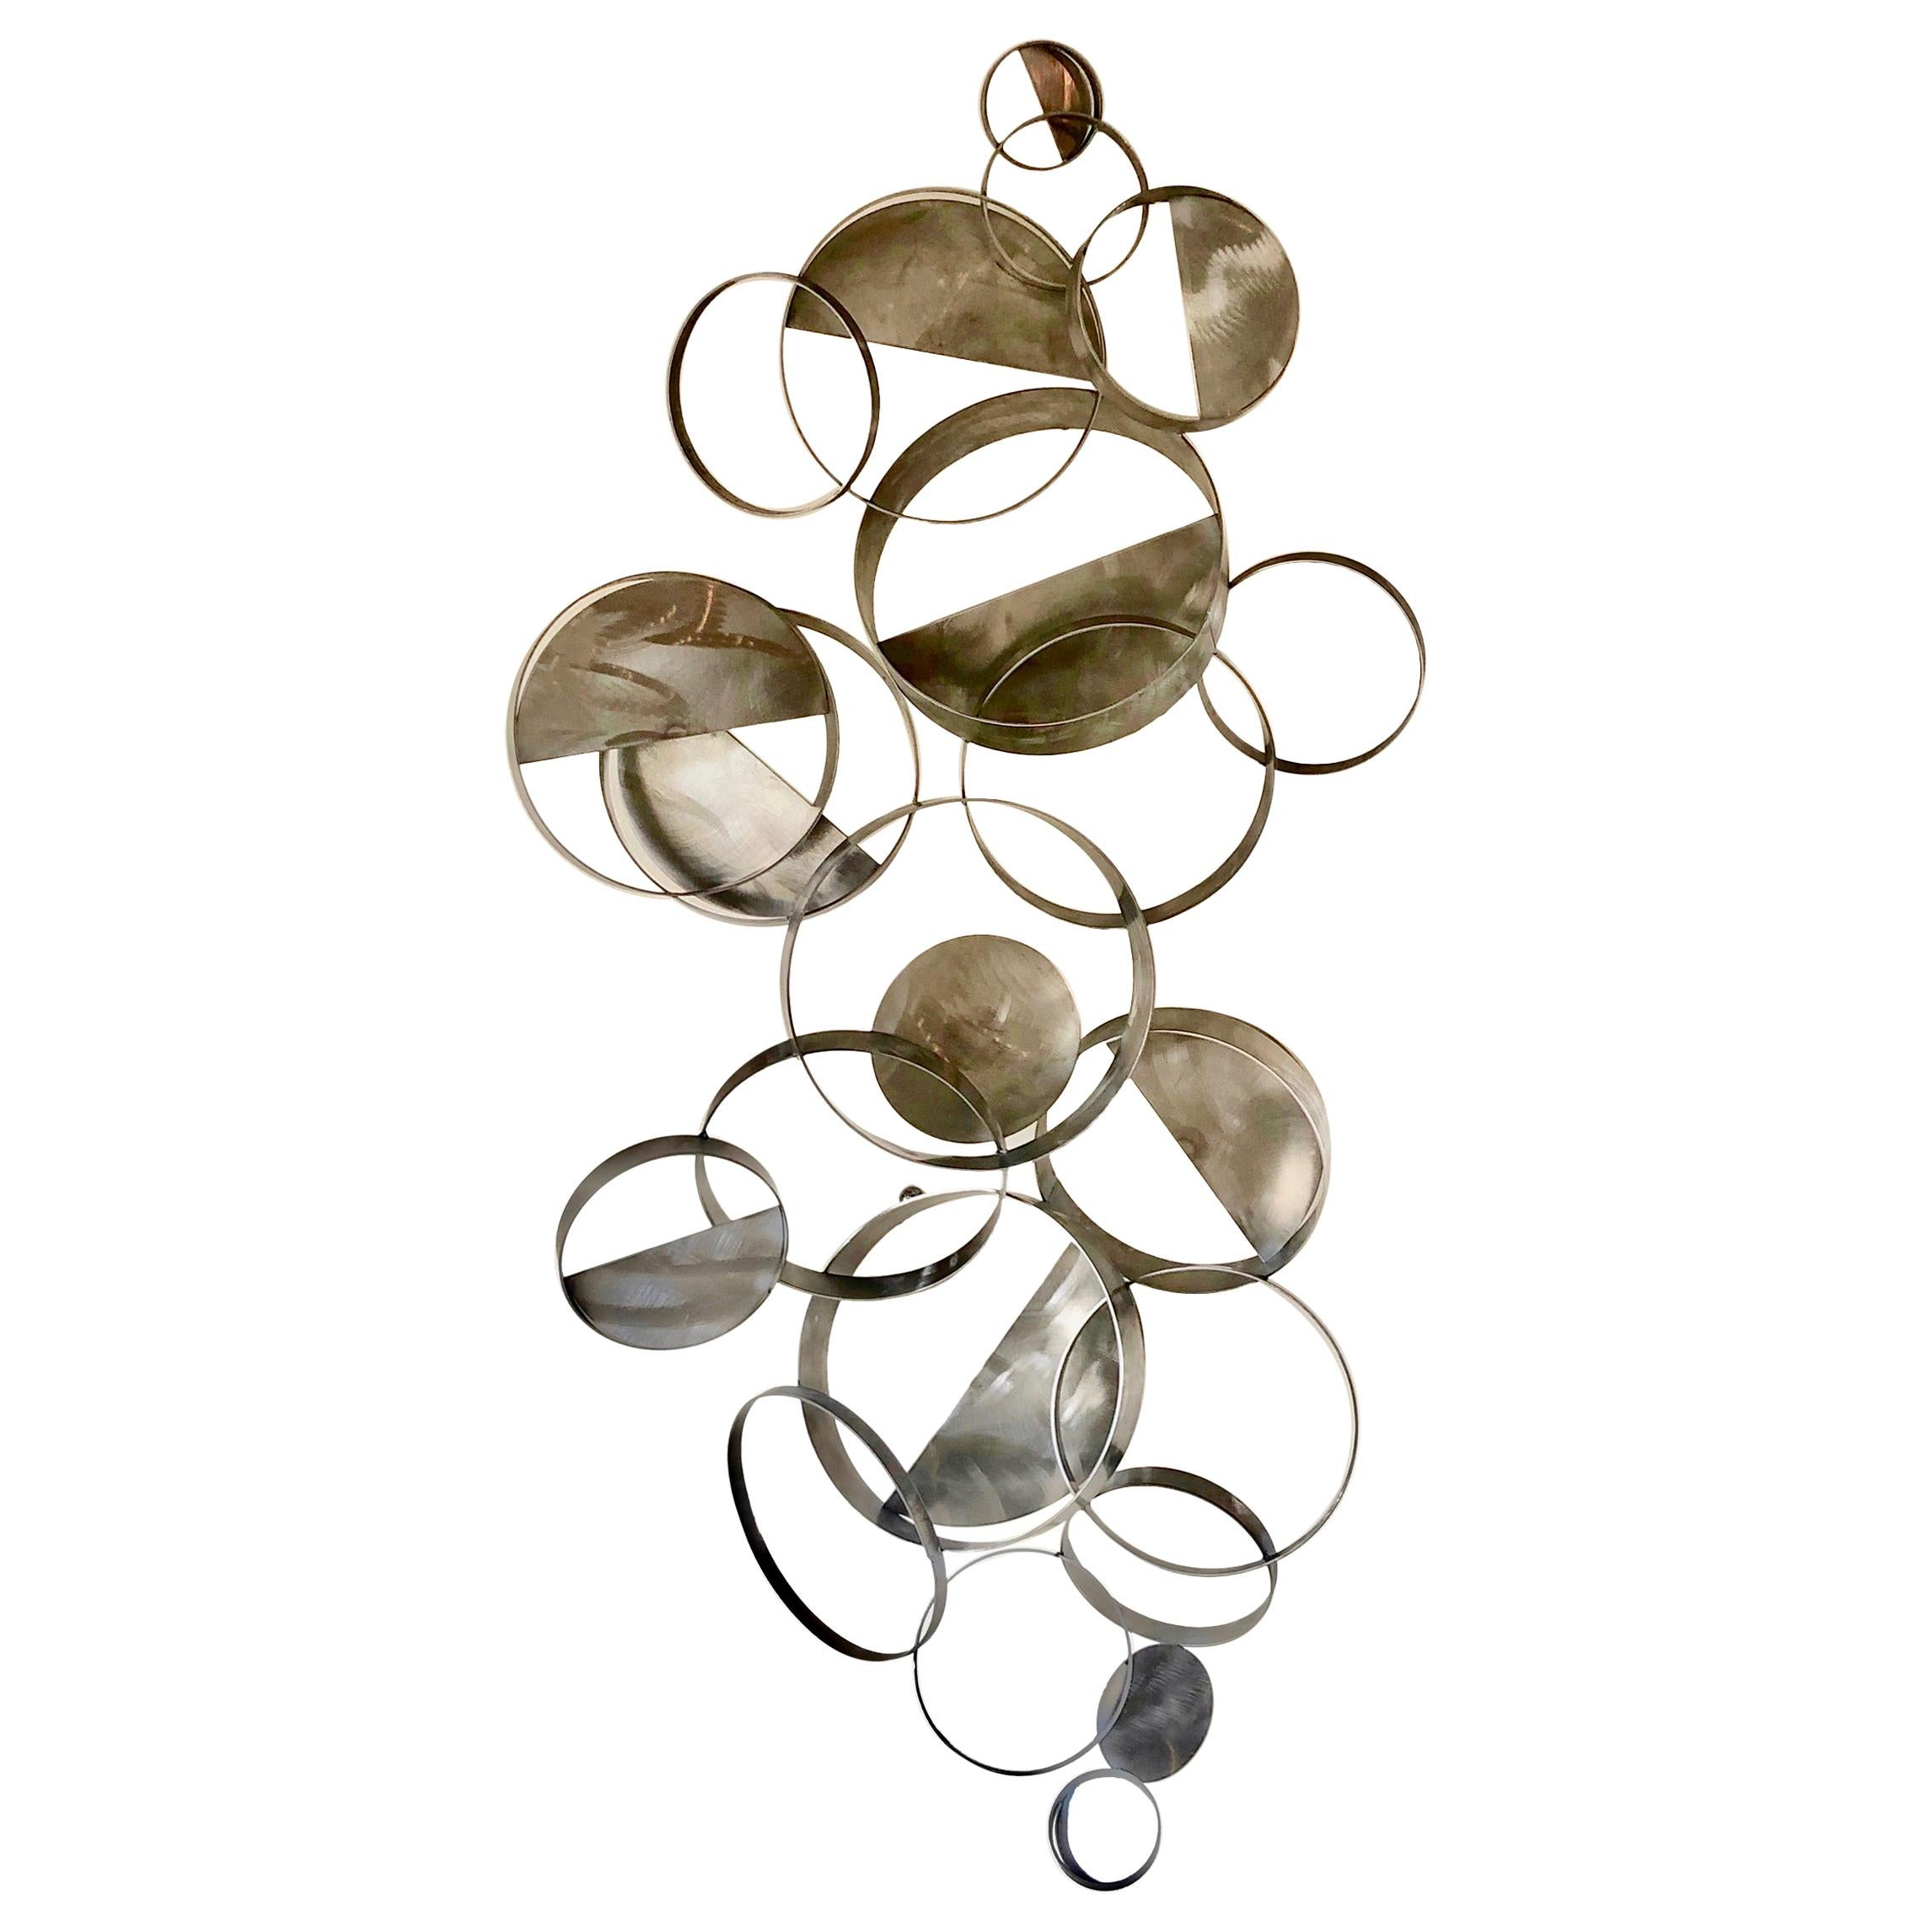 Curtis Jere Floating Ring Sculpture